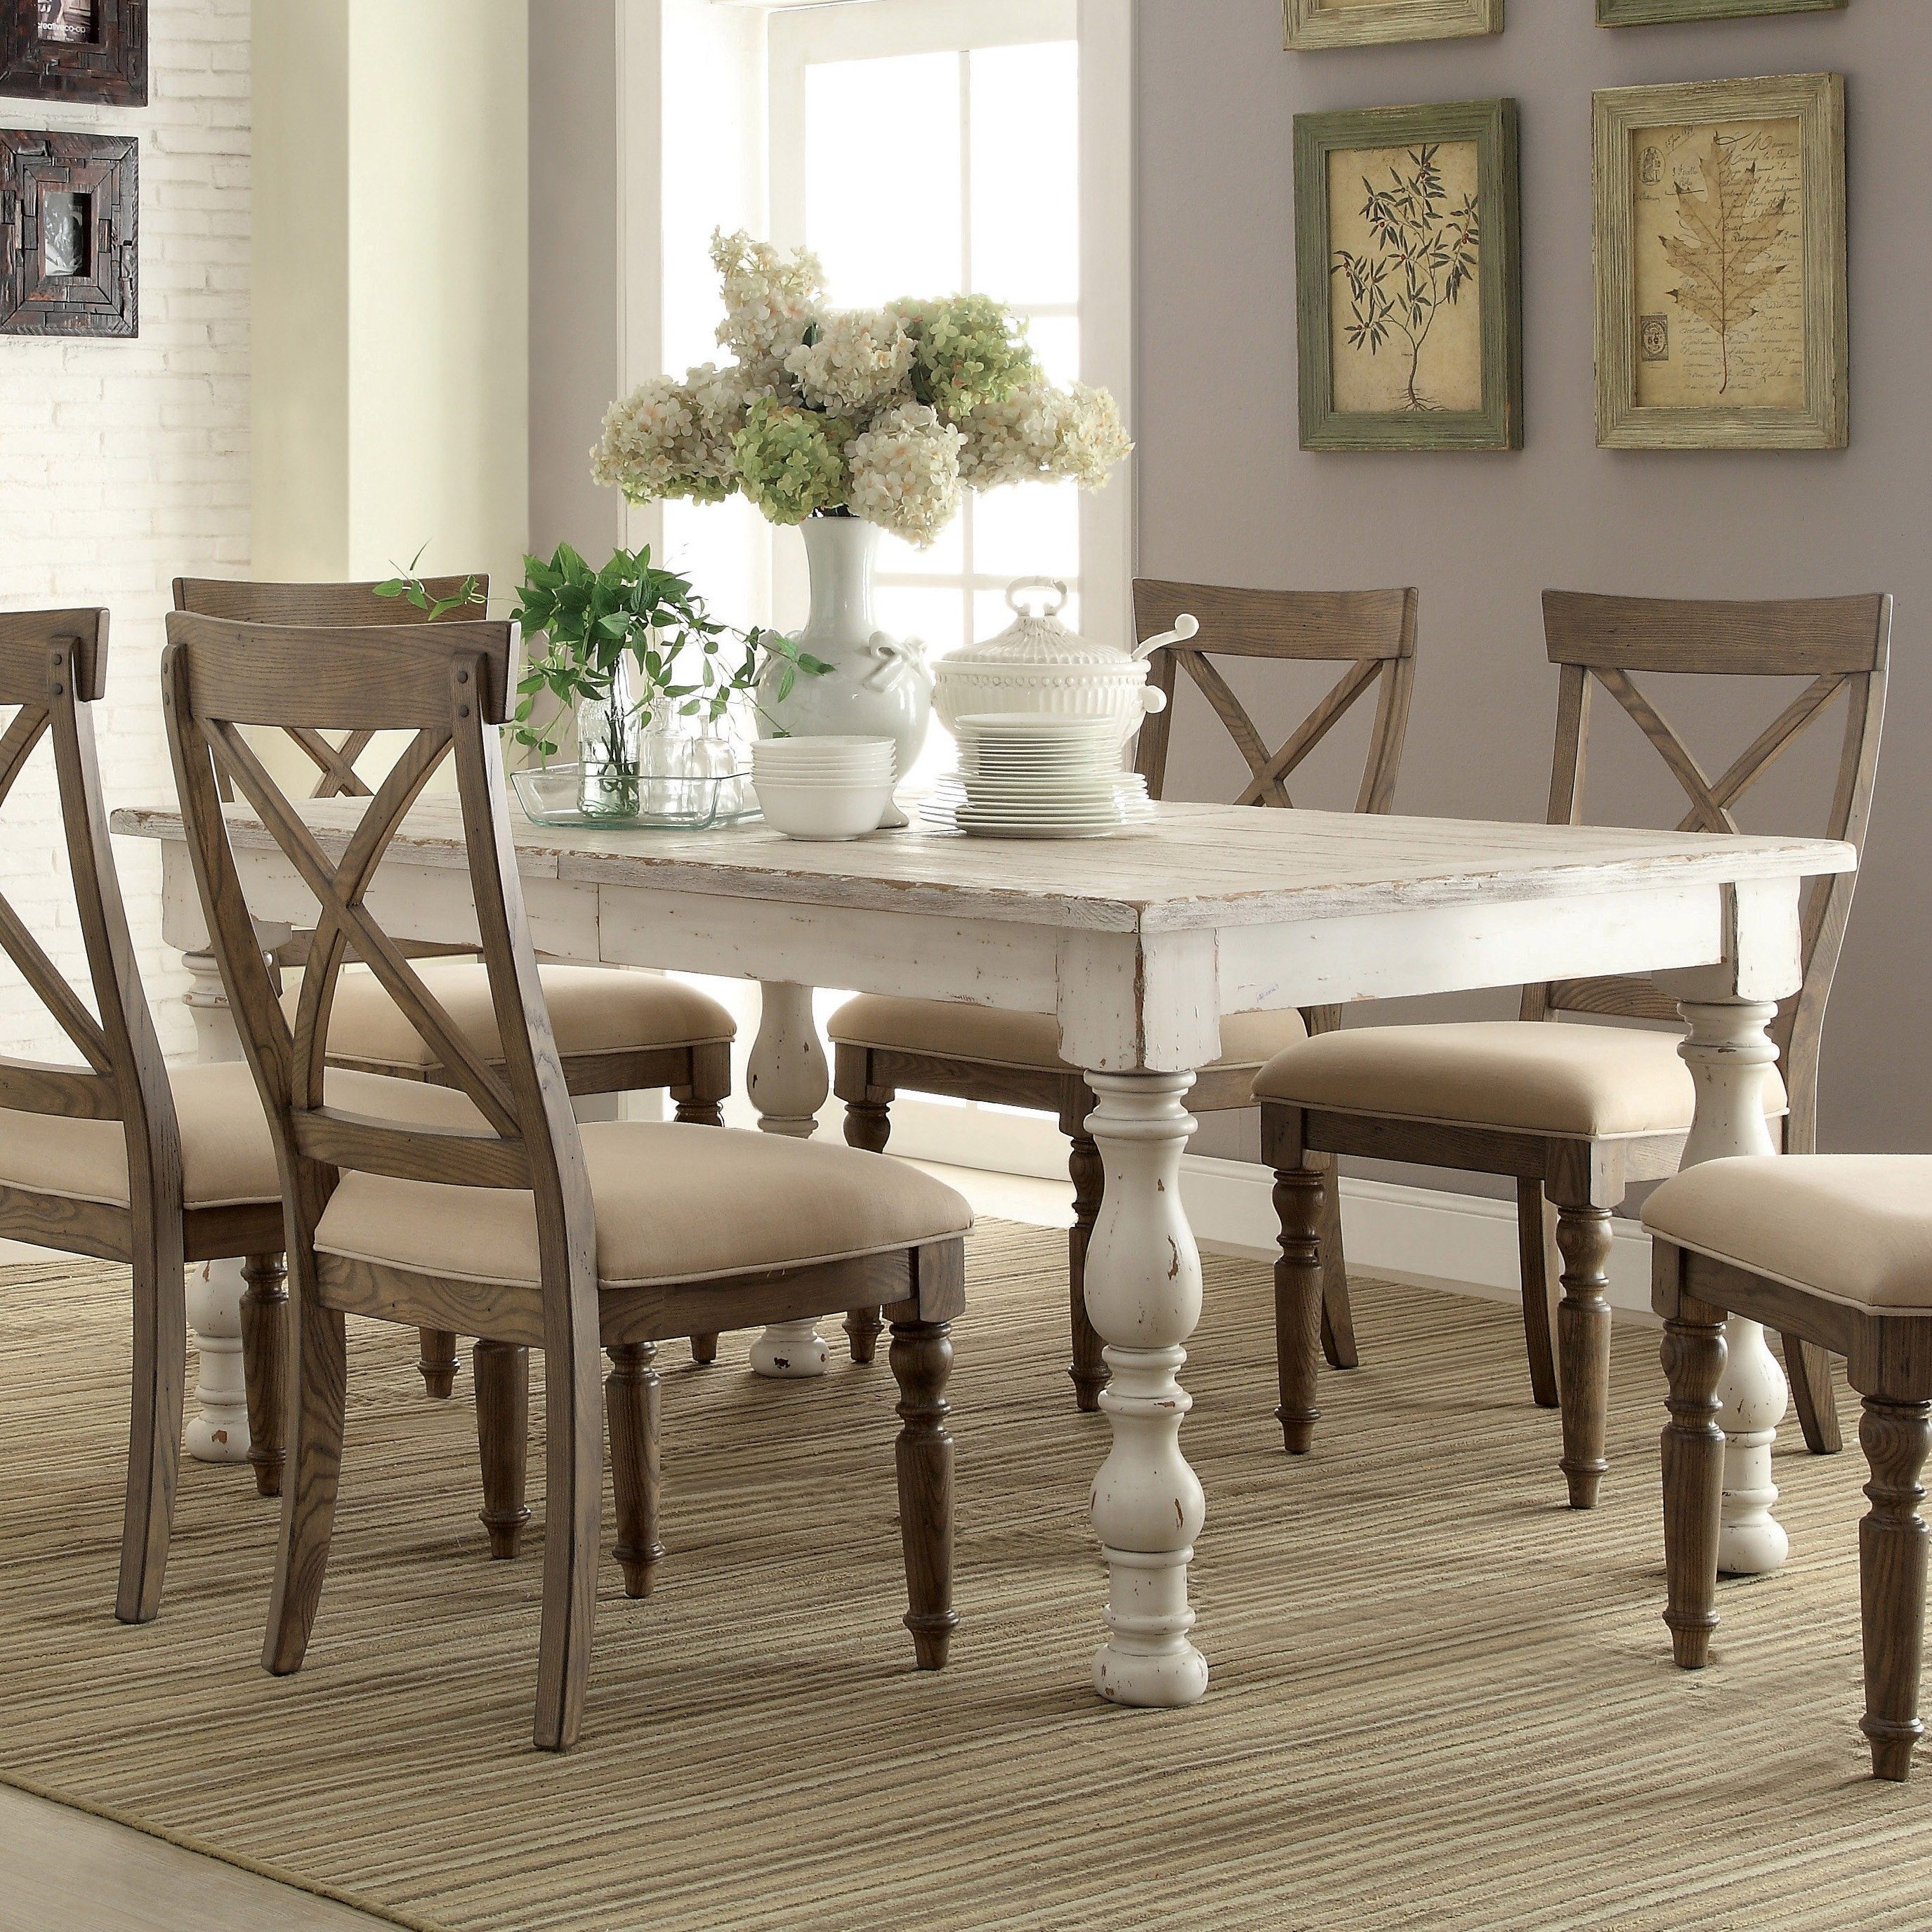 Aberdeen wood rectangular dining table and chairs in for Wooden dining room furniture